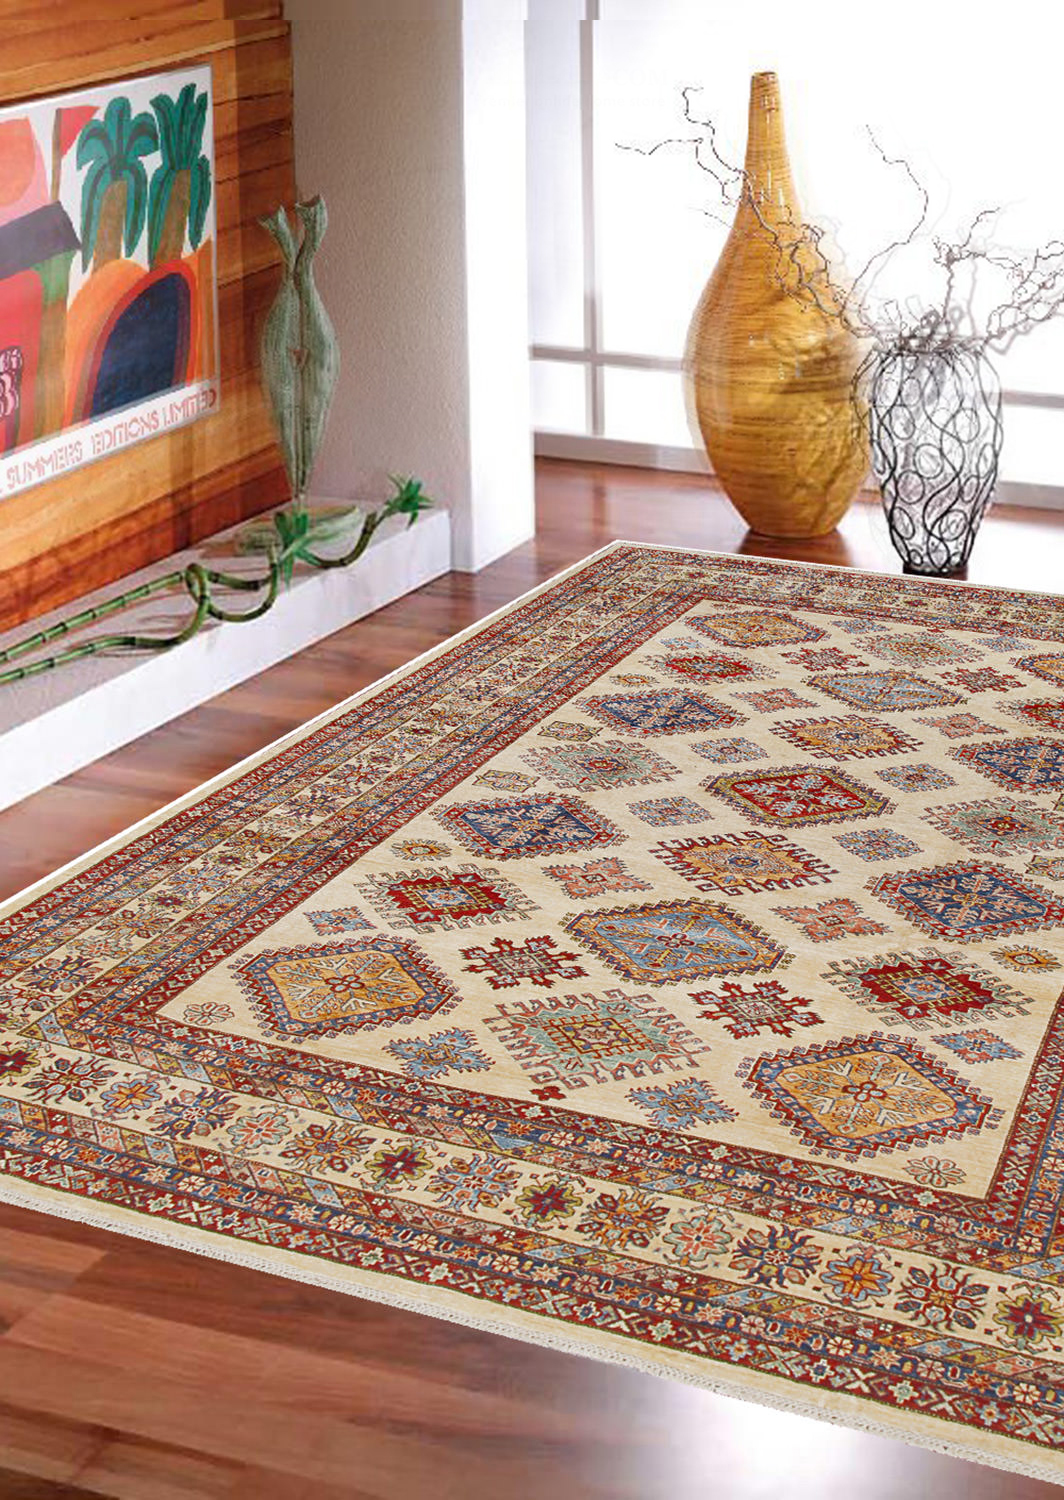 "10 Kitchen And Home Decor Items Every 20 Something Needs: Rugsville Fine Tribal Kazak Ivory Wool Rug 8'10"" X 11'9"